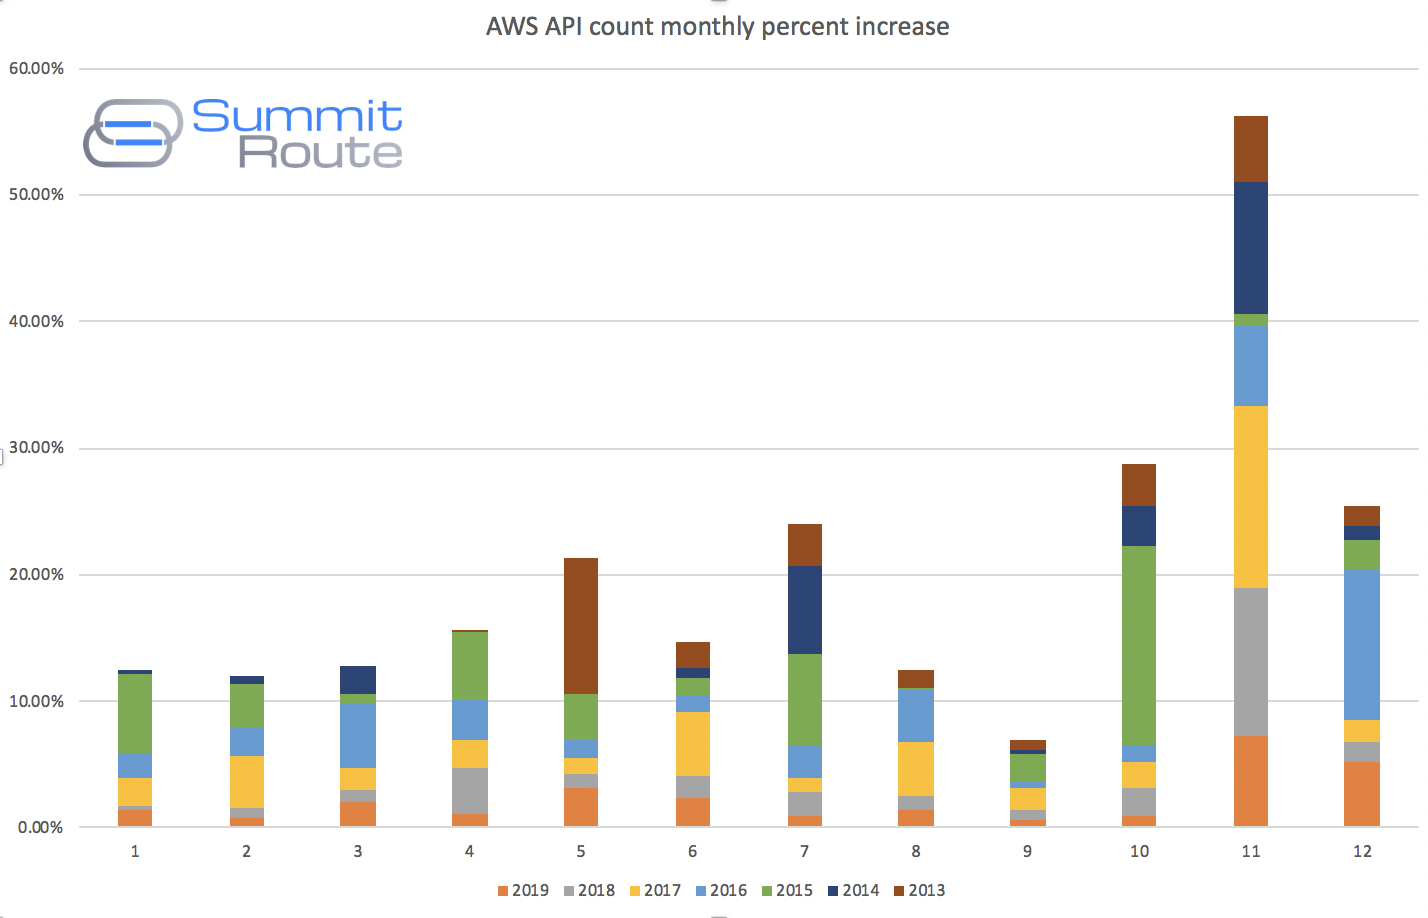 AWS API call count percent increase by month